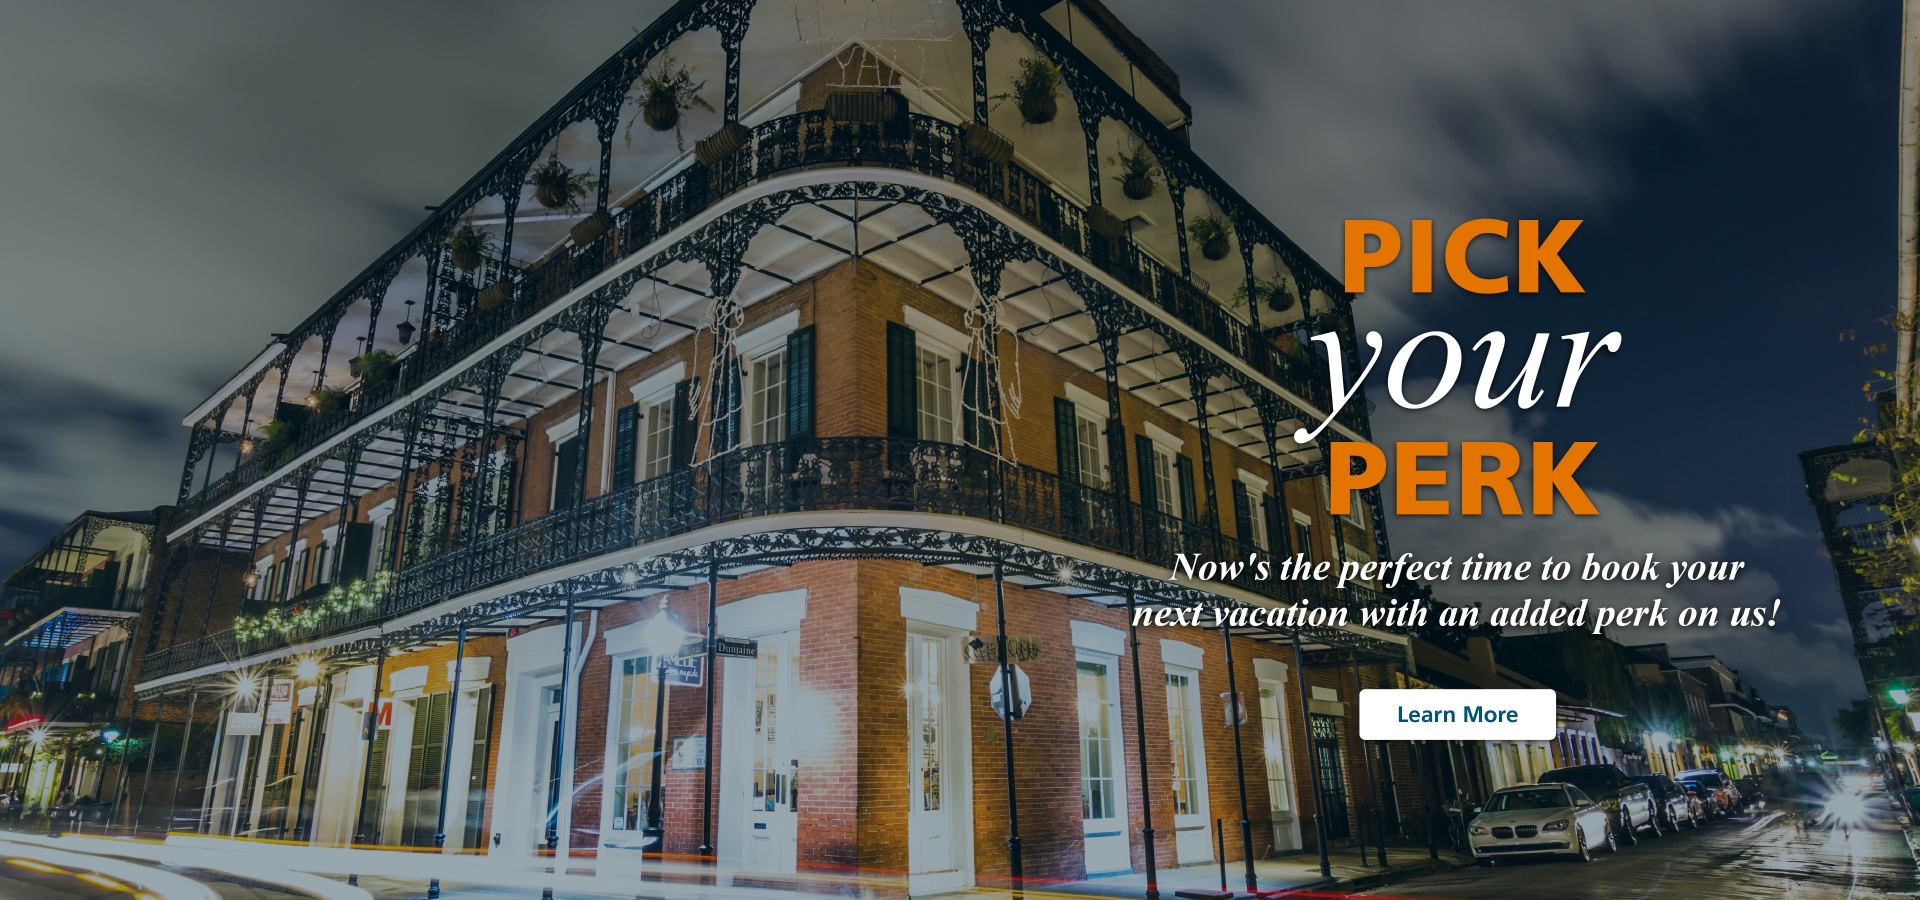 pick your perk by upgrading on amtrak in new orleans